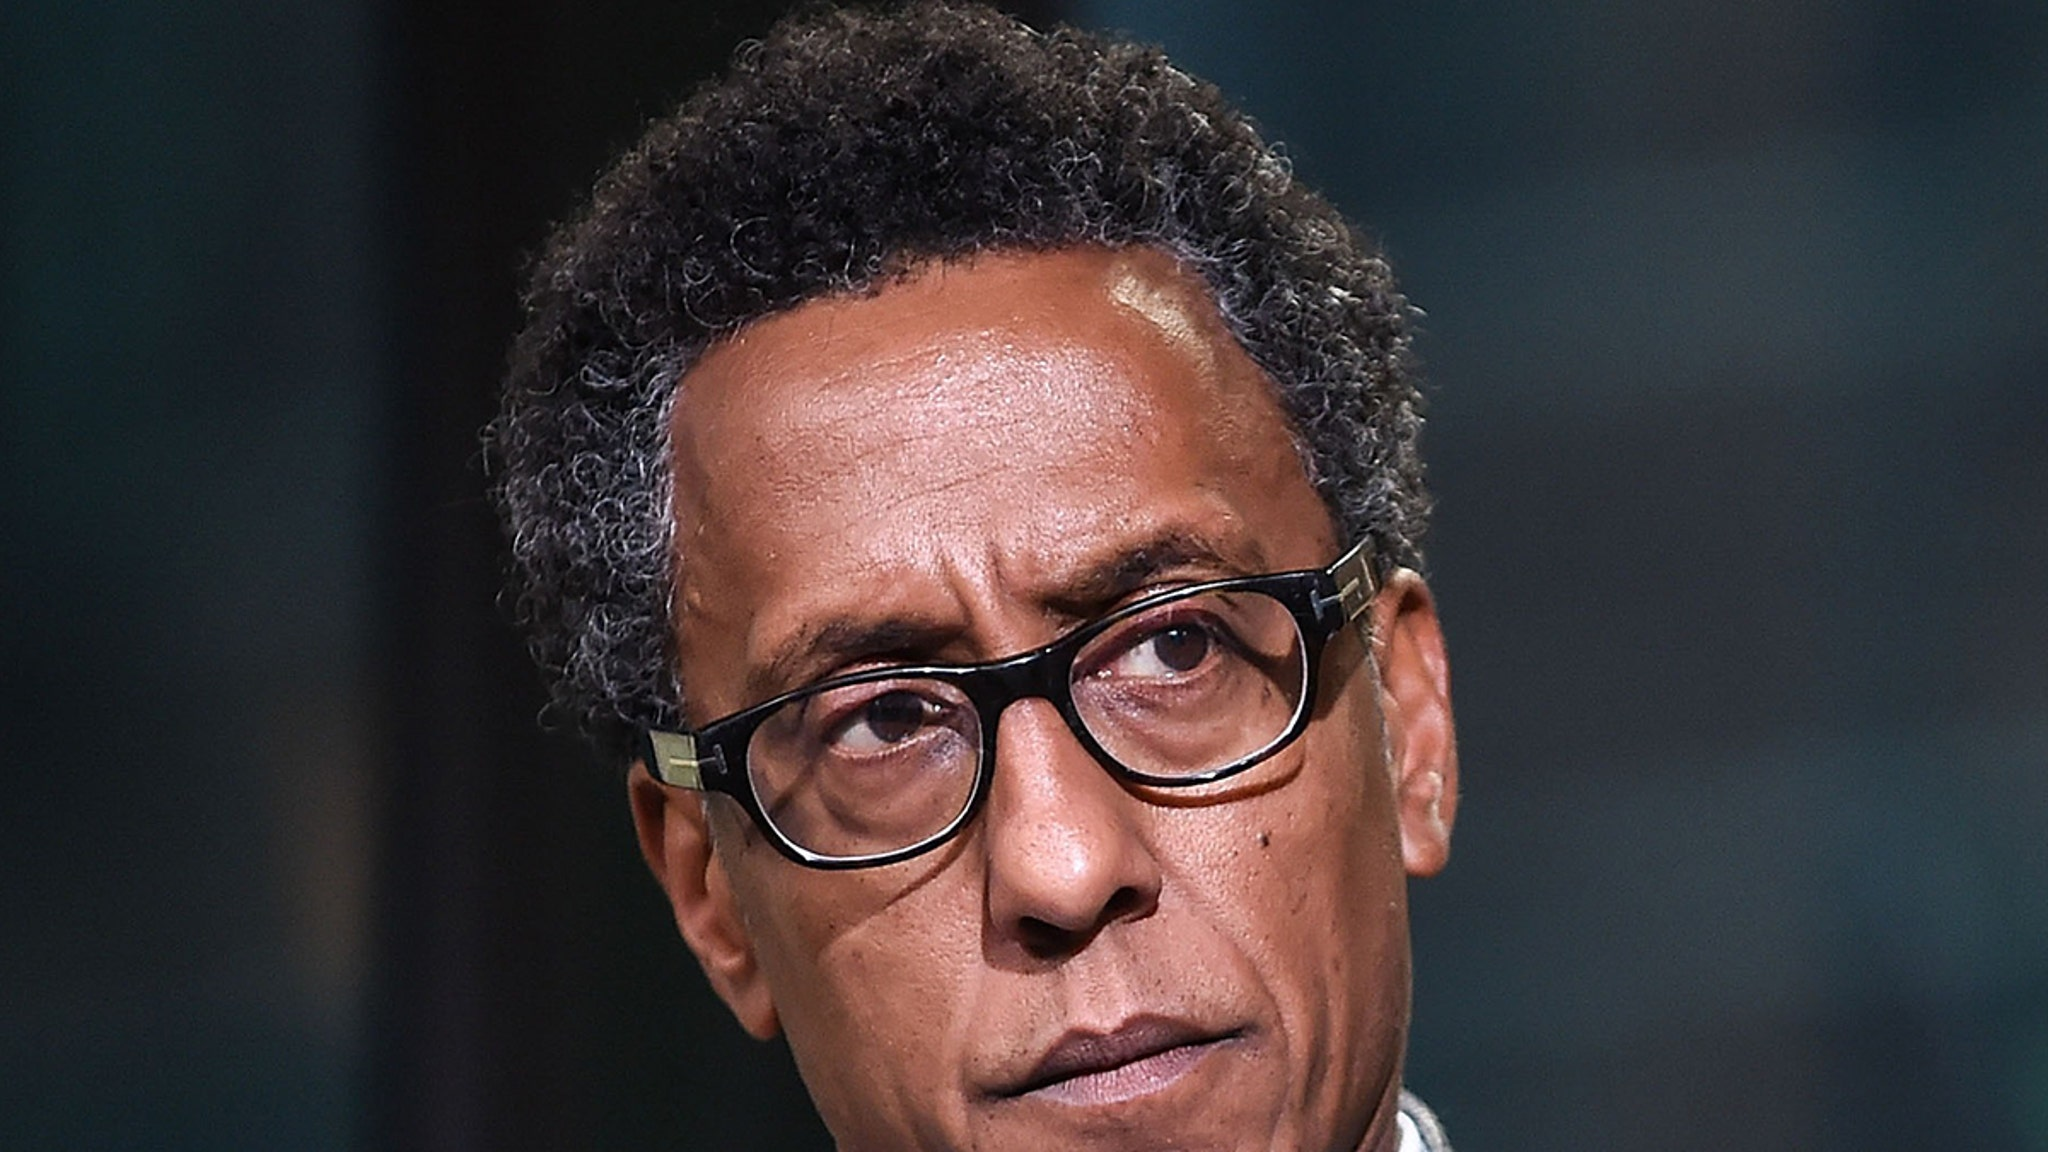 'The Wire' Star Andre Royo's Wife Files for Divorce After 22 Years of Marriage